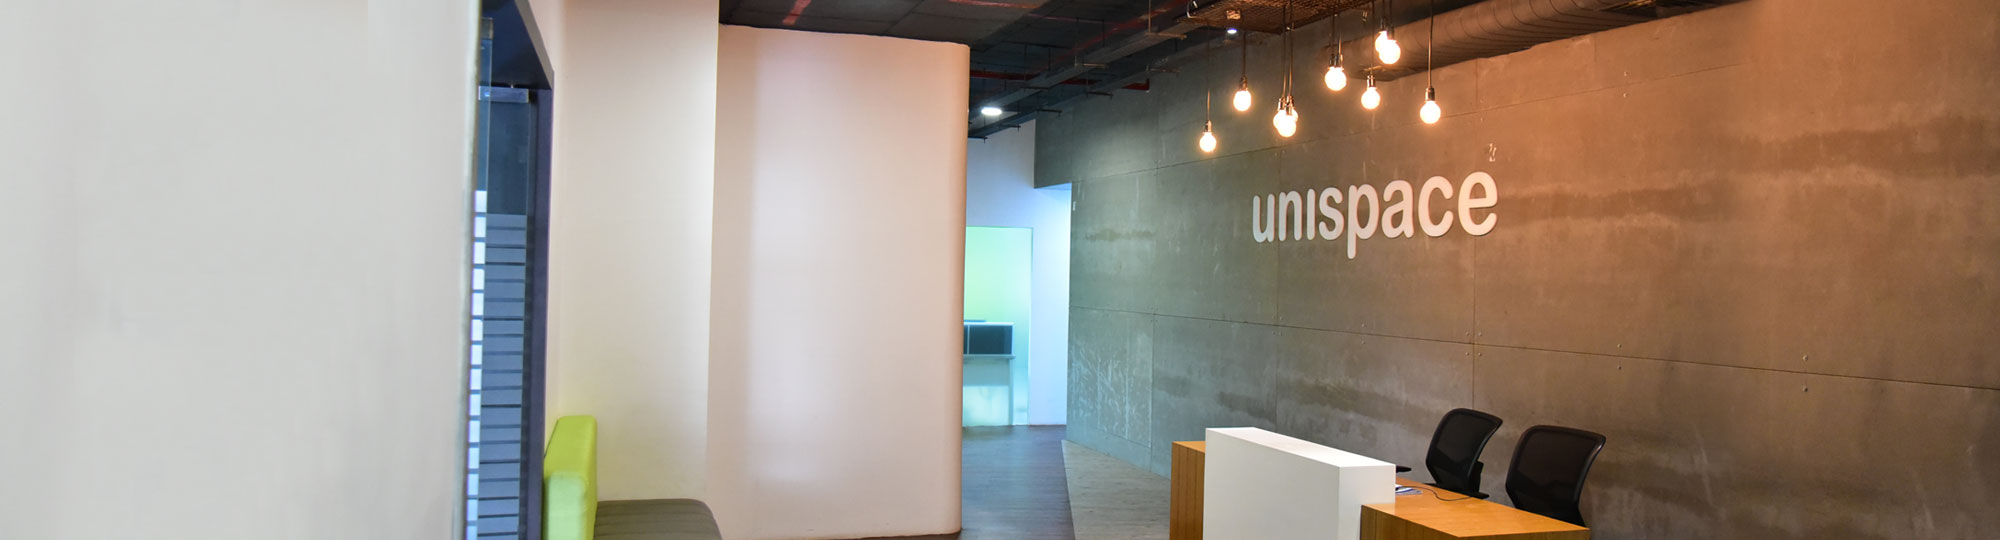 Unispace Business Center Blog-Banner